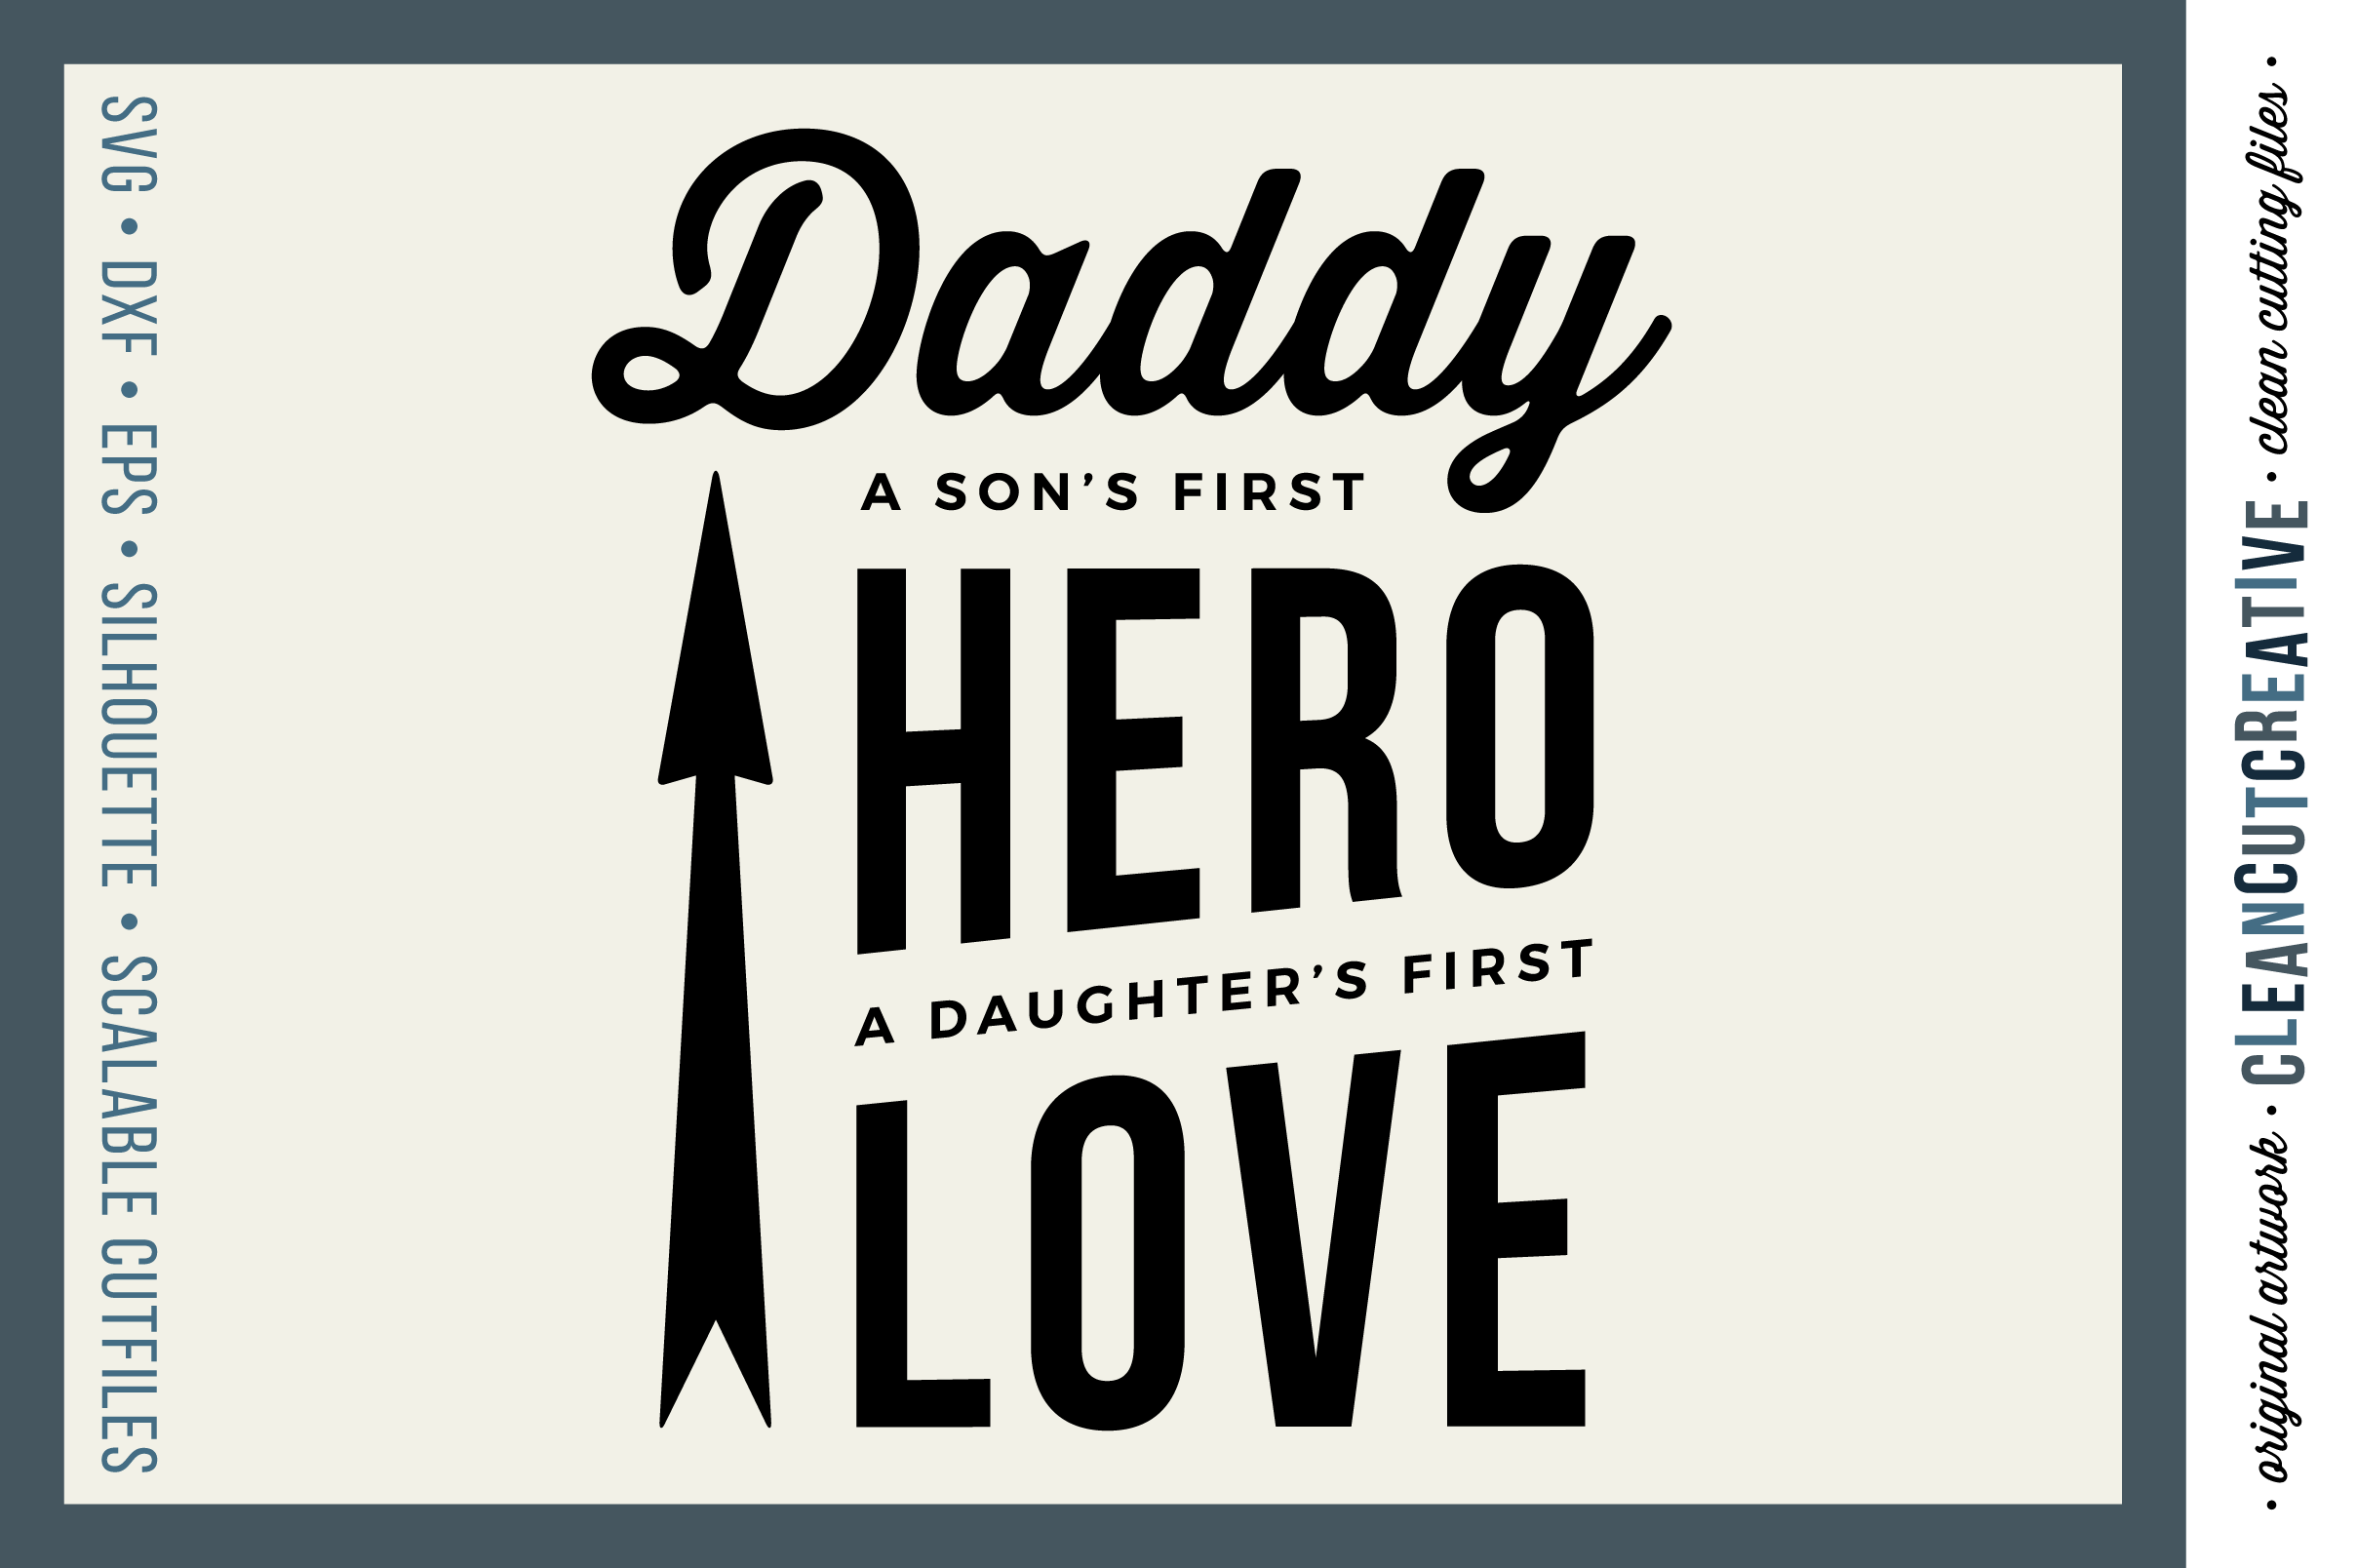 DADDY - A SON'S FIRST HERO, A DAUGHTER'S FIRST LOVE - SVG DXF EPS PNG- Cricut and Silhouette - clean cutting files example image 1